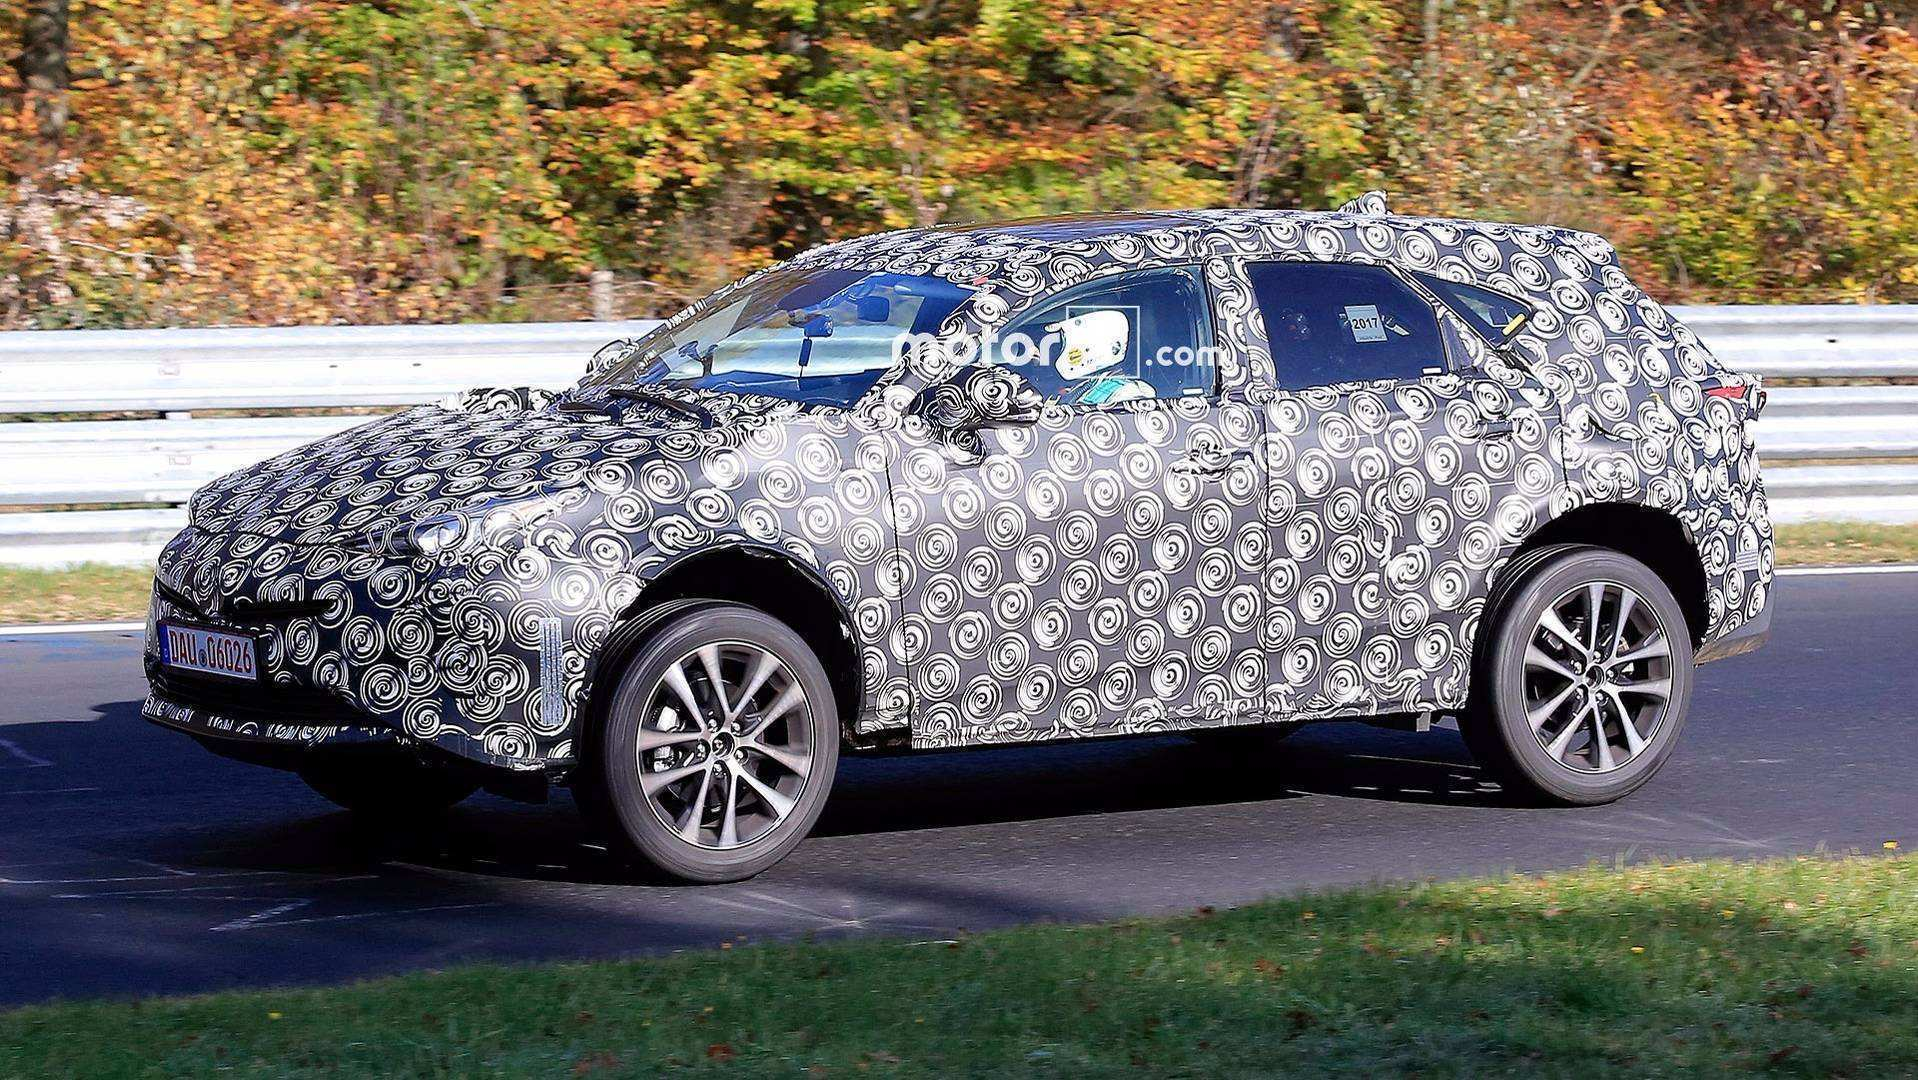 60 A 2020 Spy Shots Toyota Prius Images